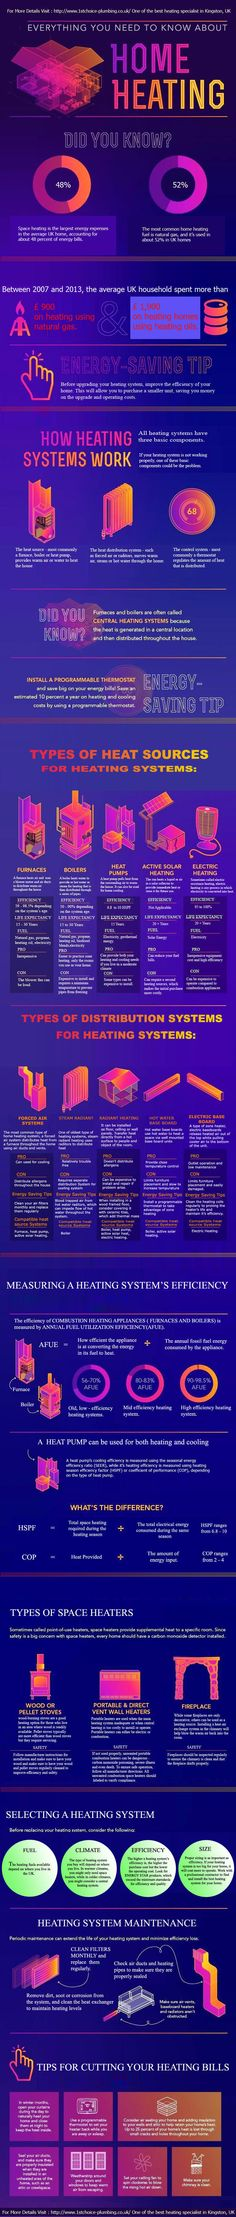 18 best *Central Heating* images on Pinterest | Central heating ...